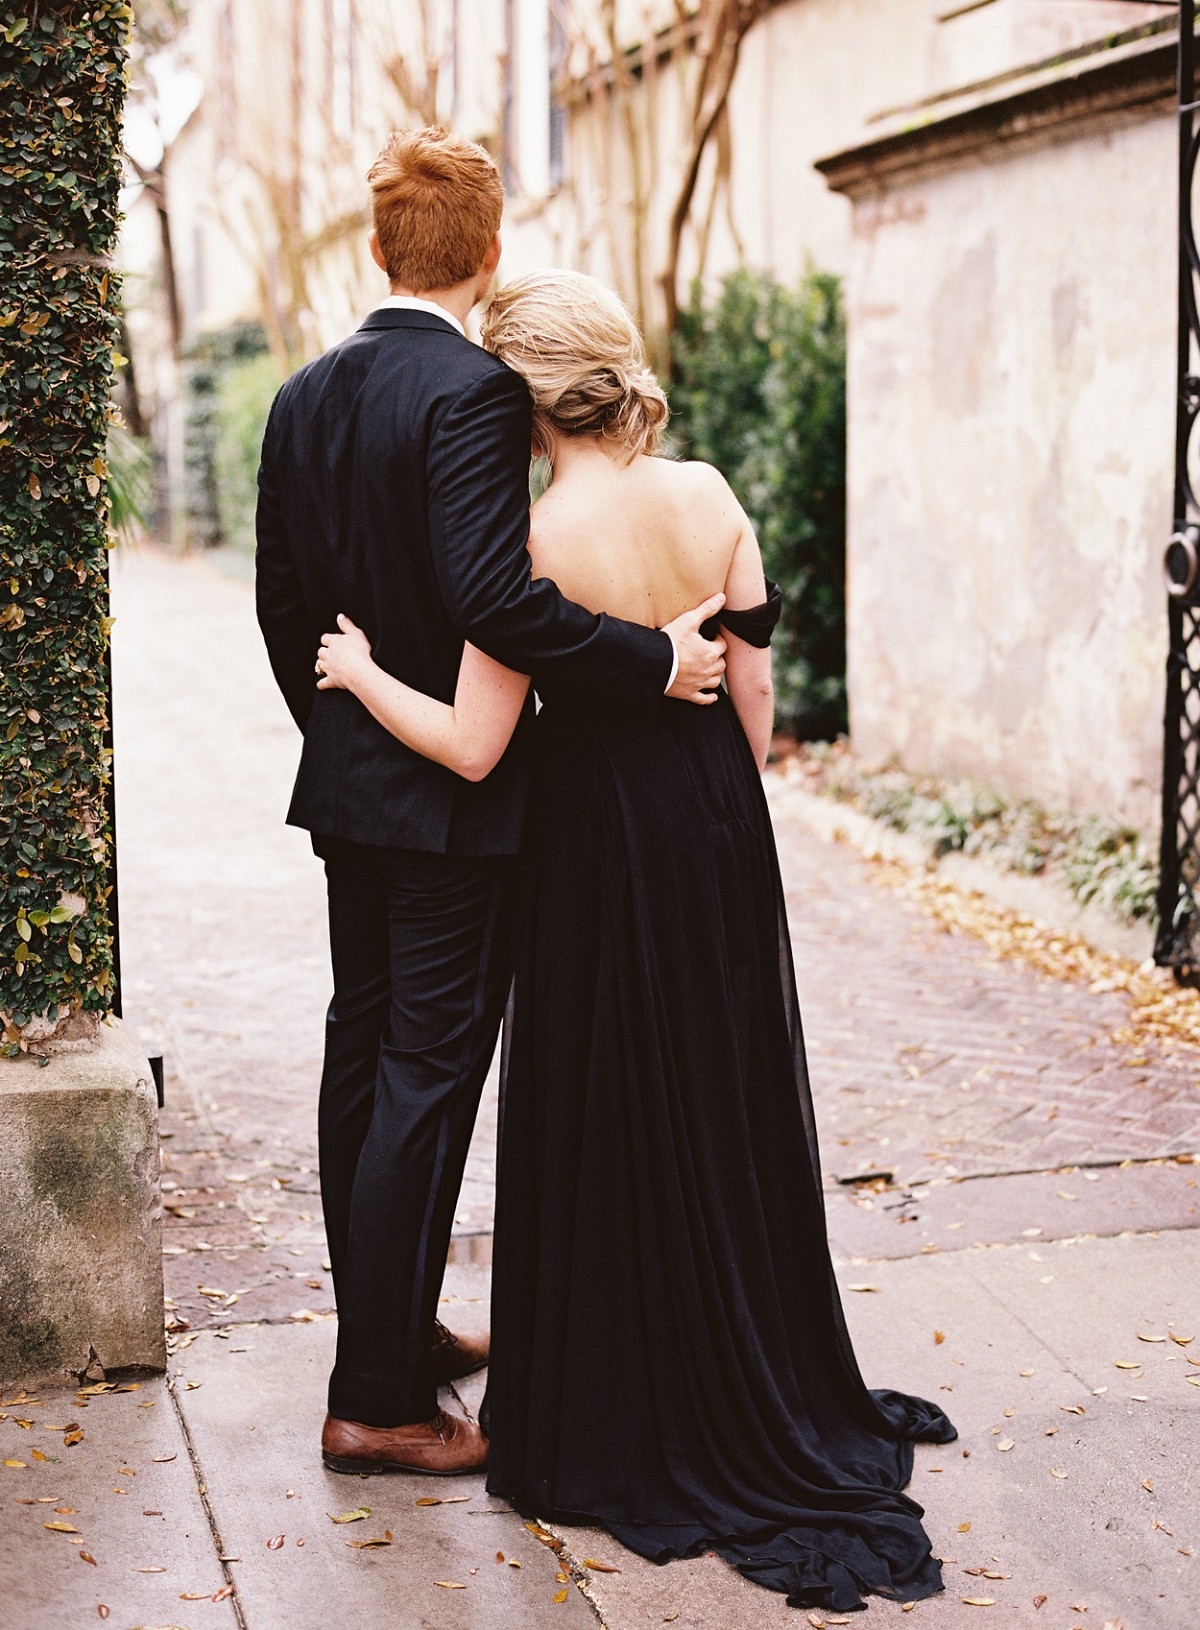 Formal Engagement Photos in Charleston by Ashley Cox | Wedding Sparrow | wedding blog